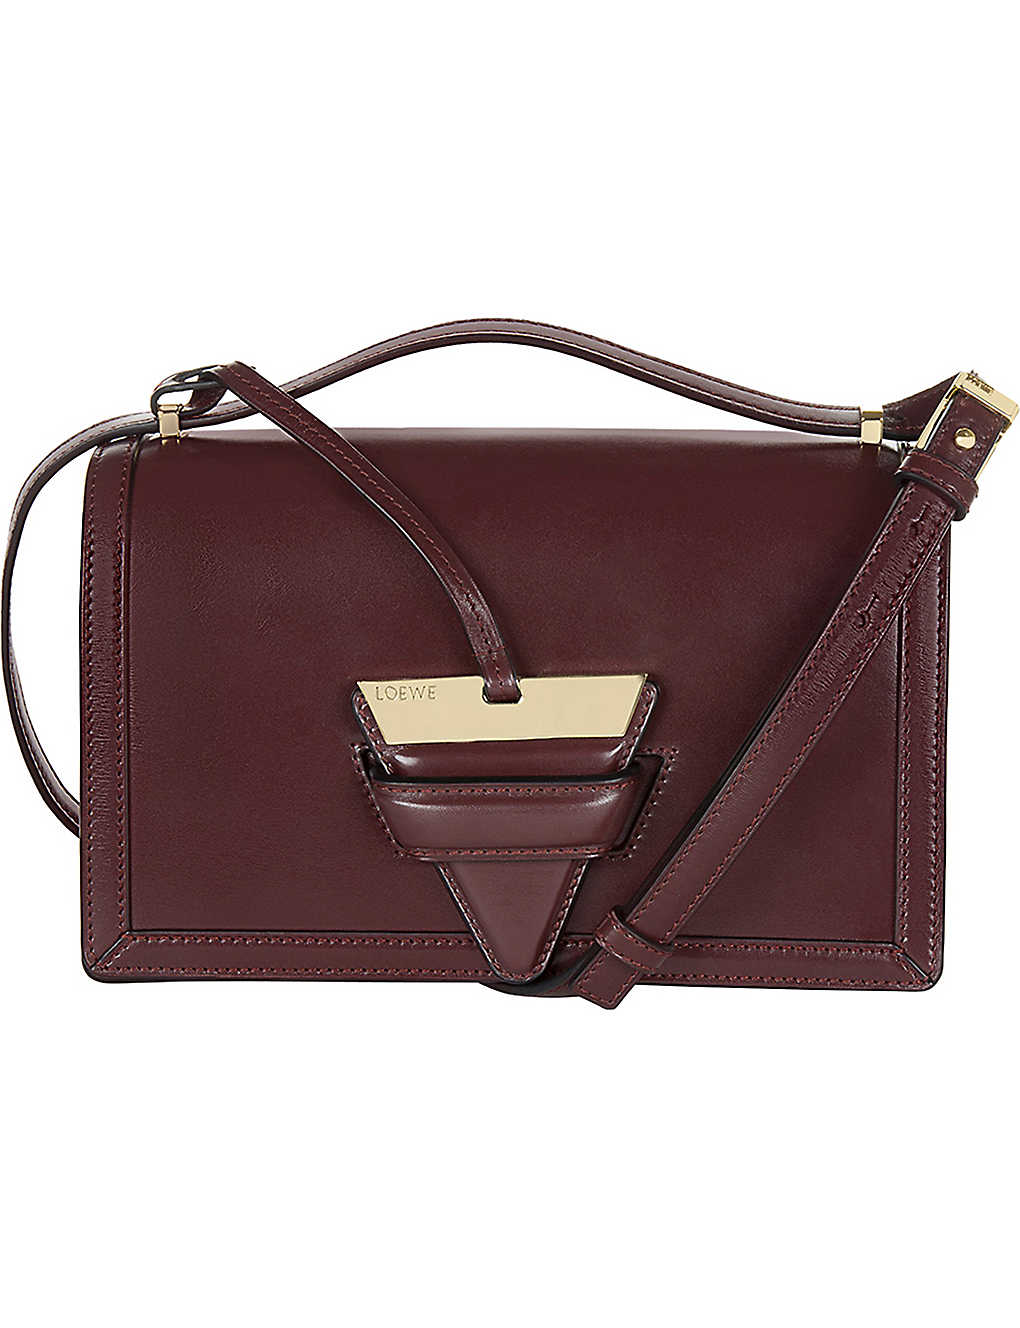 e71a98059116 LOEWE - Barcelona leather shoulder bag | Selfridges.com